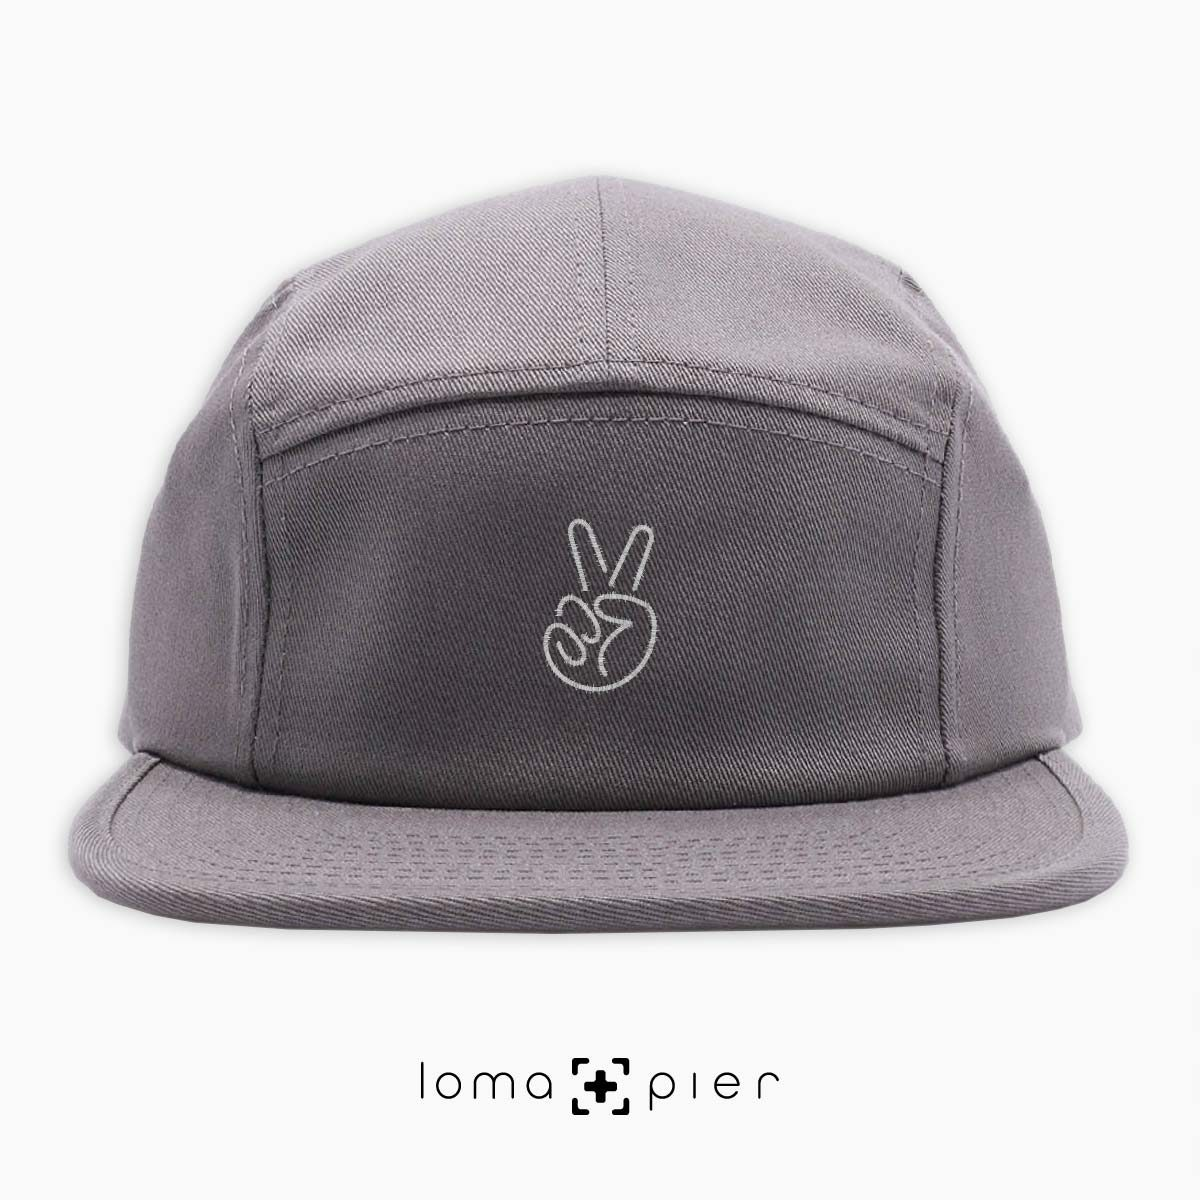 PEACE HAND icon embroidered on a grey cotton 5-panel hat with white thread by loma+pier hat store